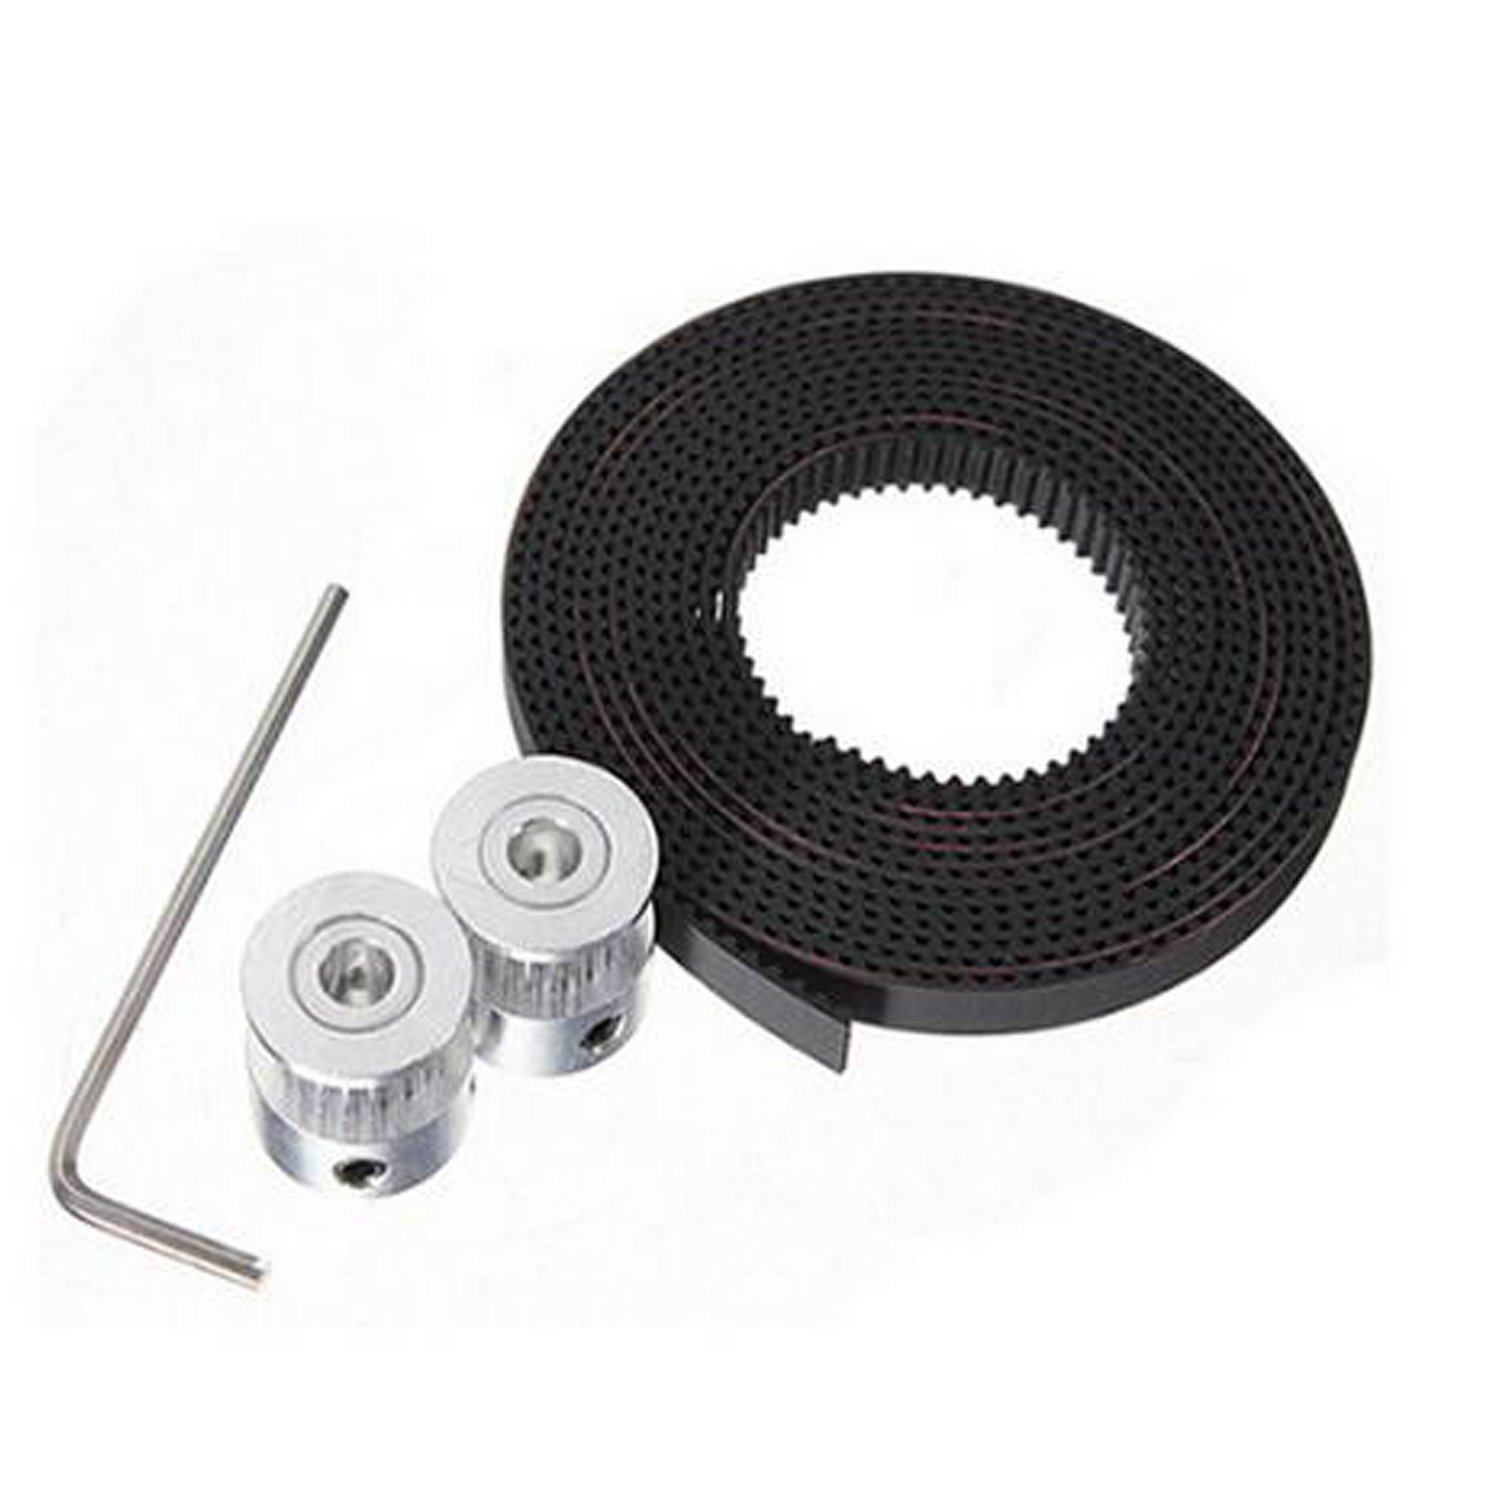 moinkerin 2pcs GT2 Pulley 20 Teeth, Bore 5mm, Height 16mm + 2 Meters GT2 Timing Pulley Rubber toothed Belt + Wrench for 3D Printer (2M)